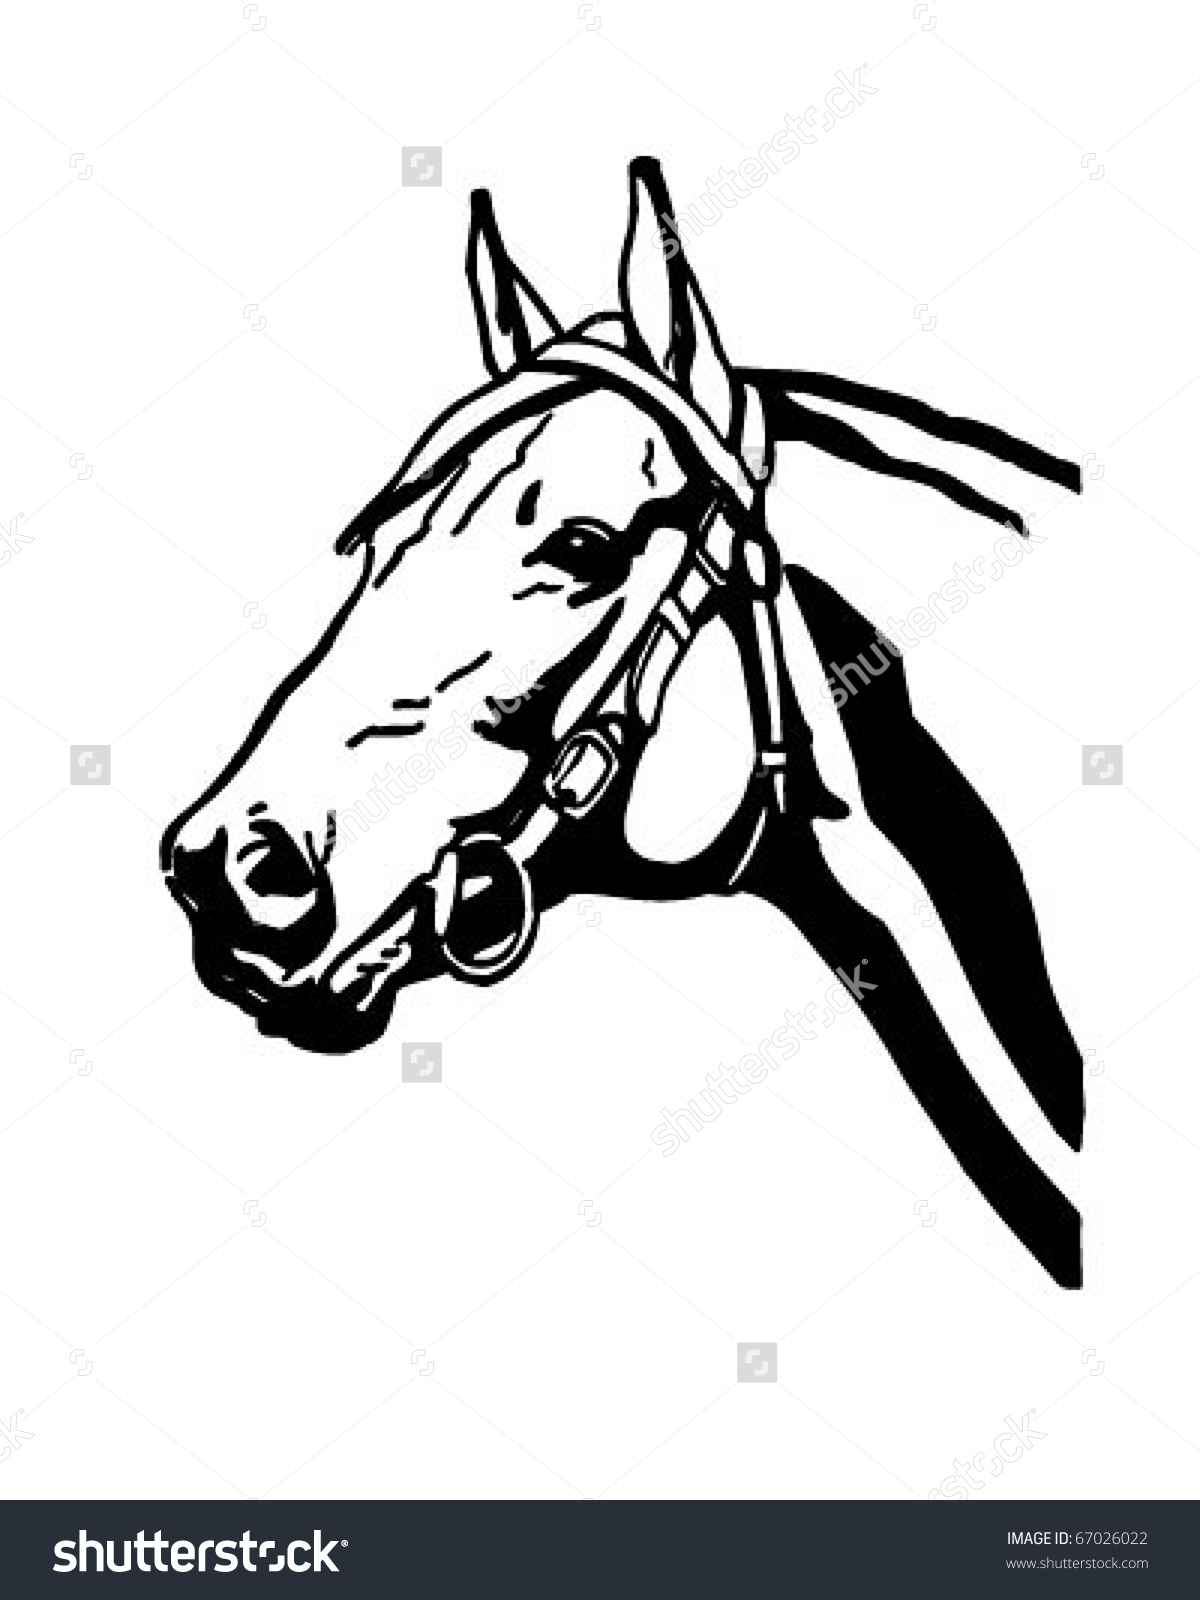 Thoroughbred horse head clipart.